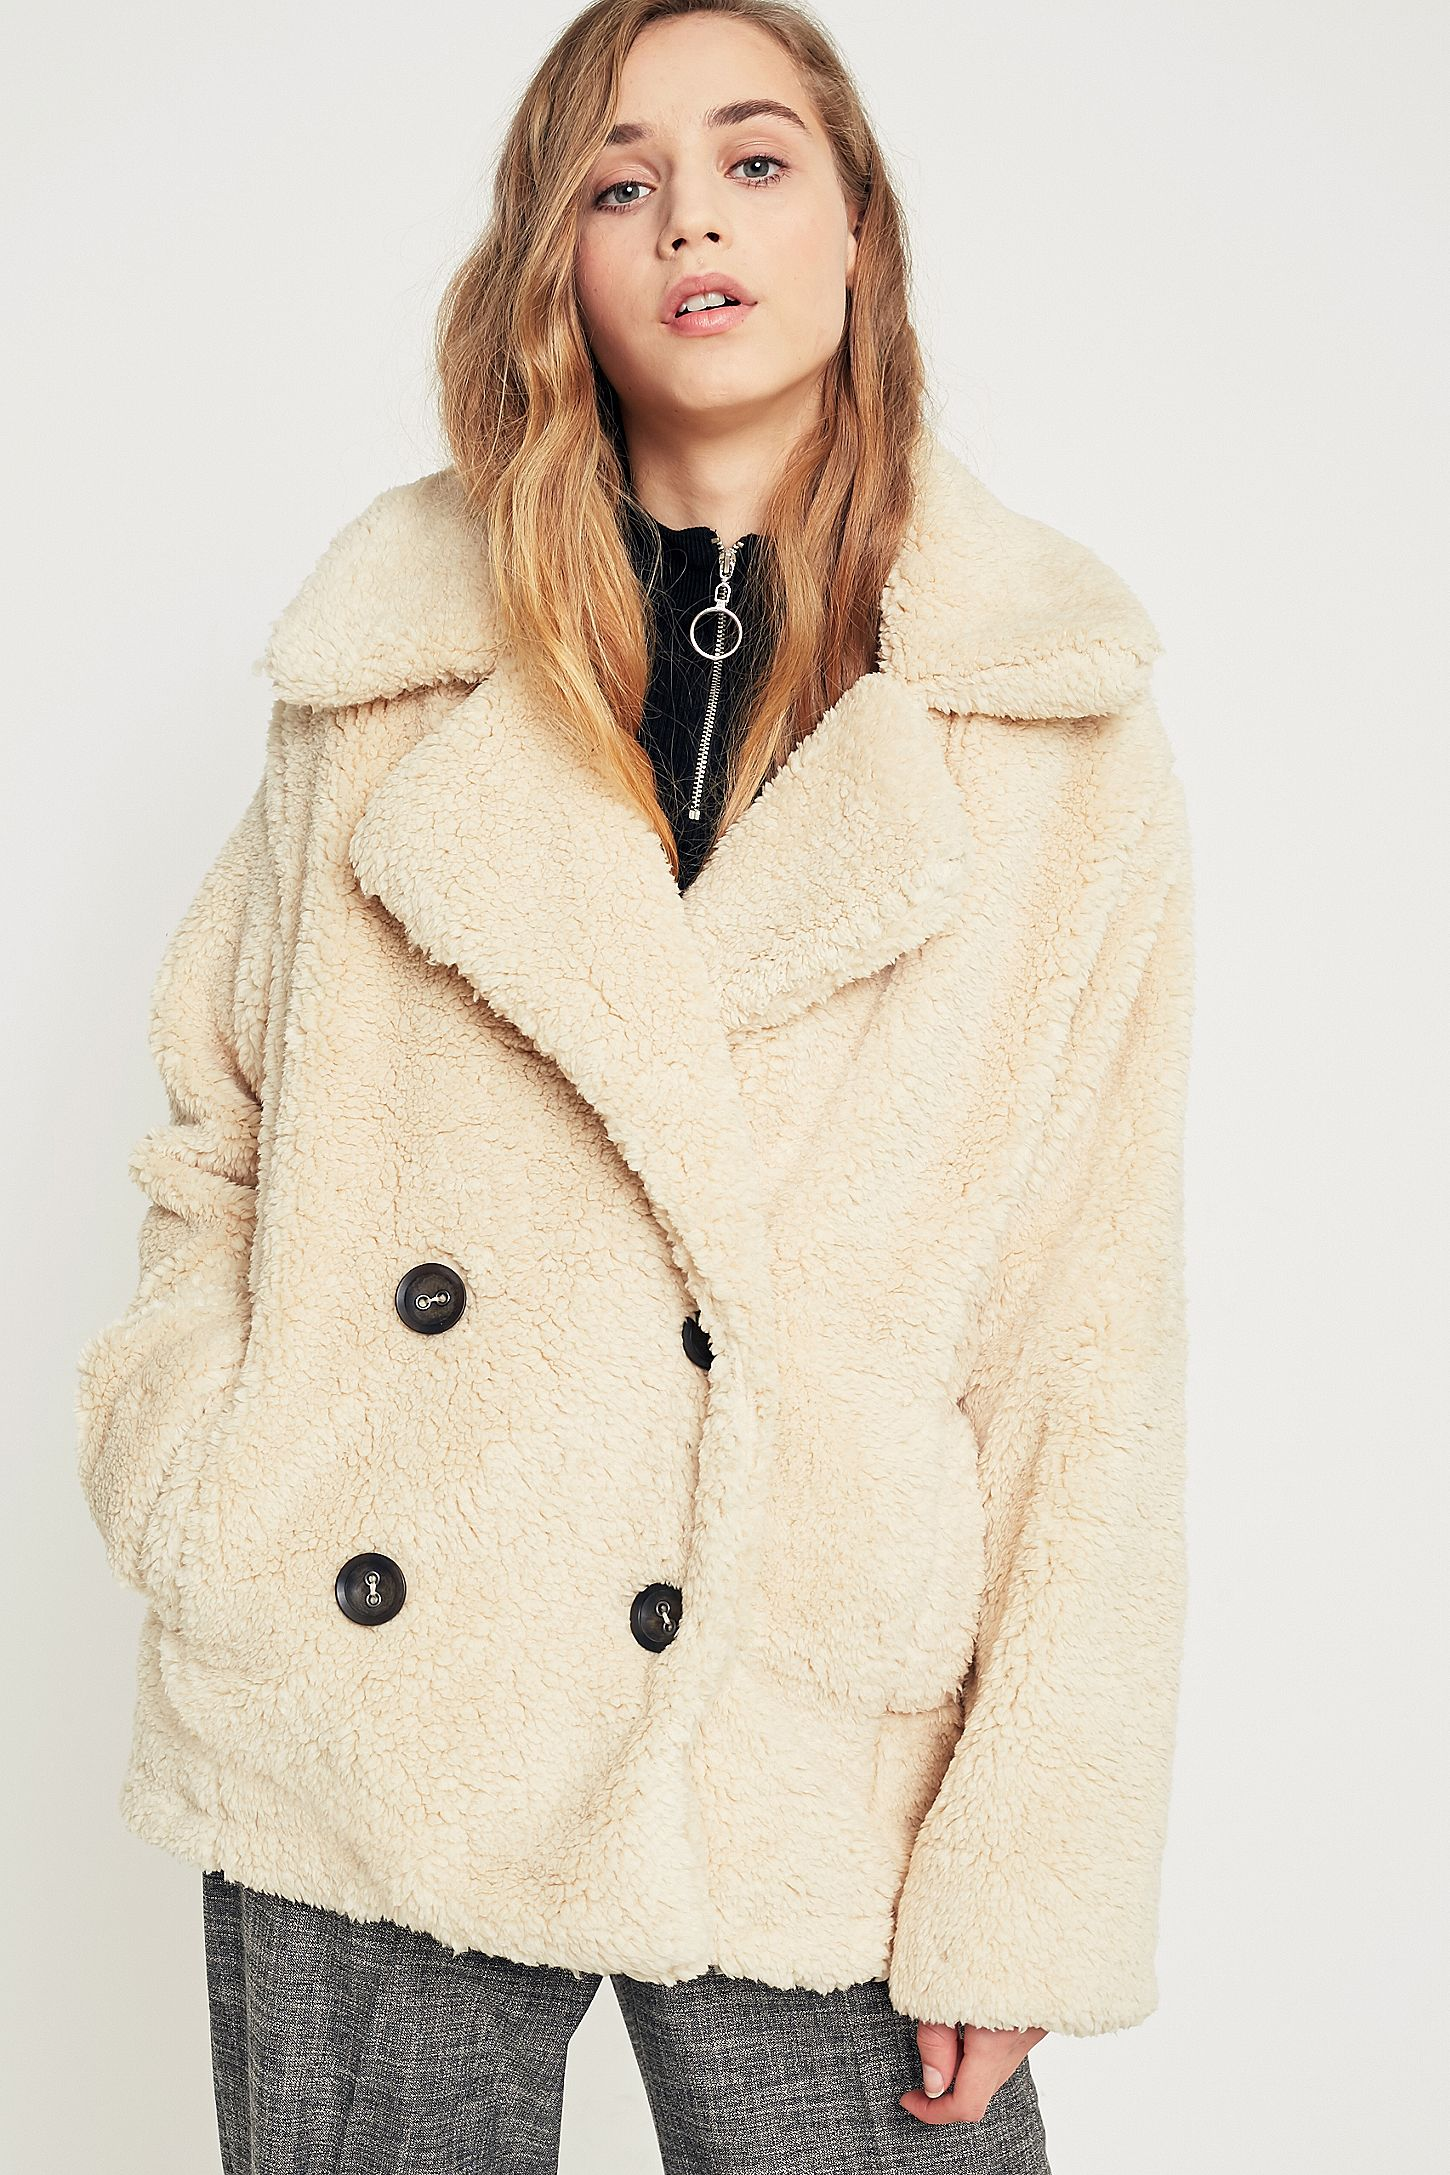 28b073a7d944 Free People Ivory Notched Lapel Teddy Peacoat